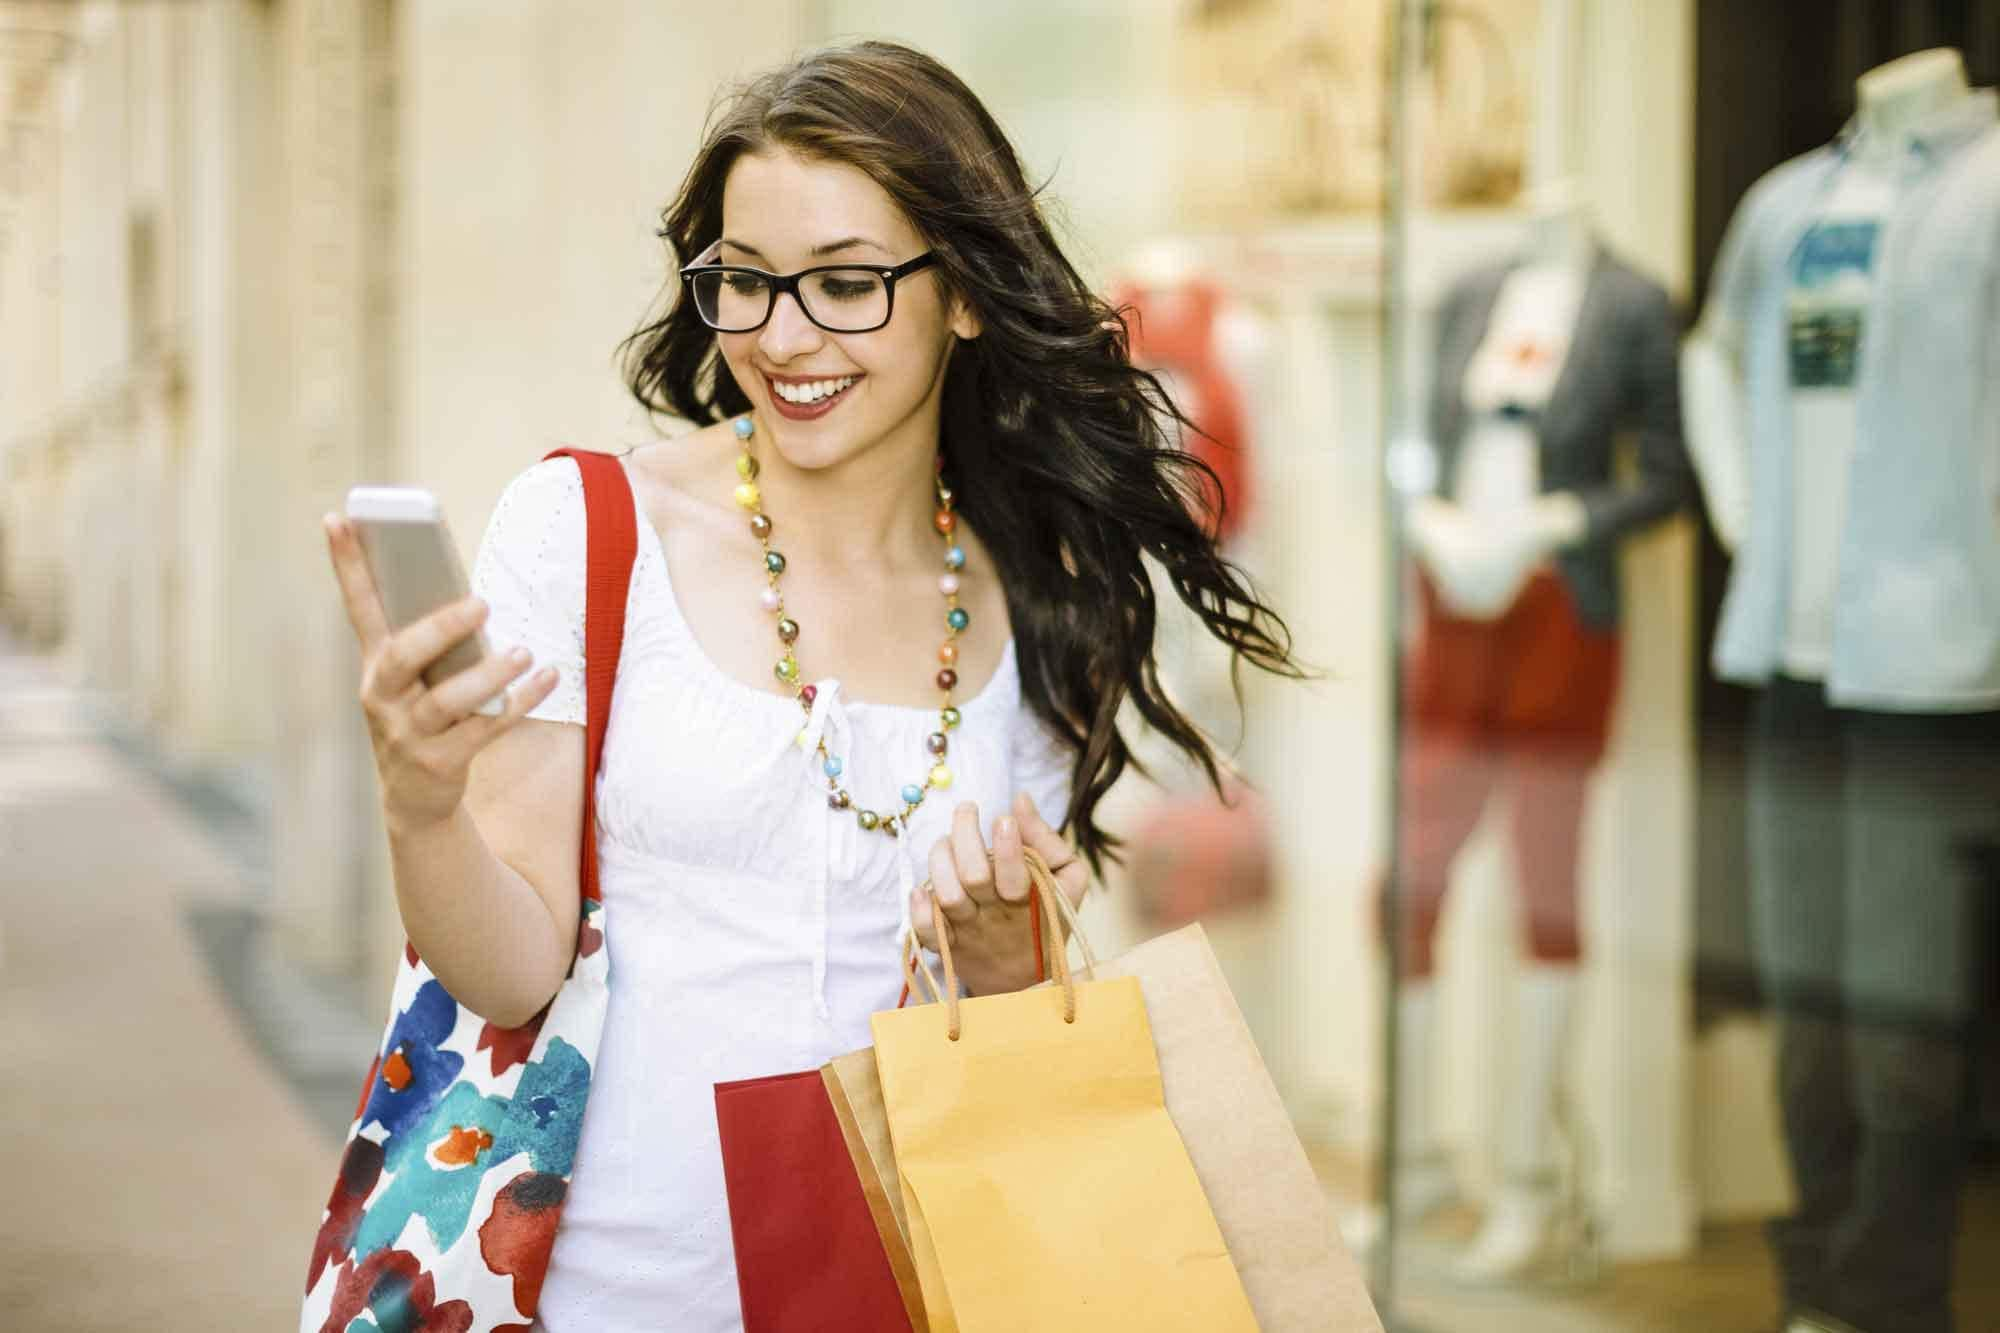 Woman carry shopping bags using phone